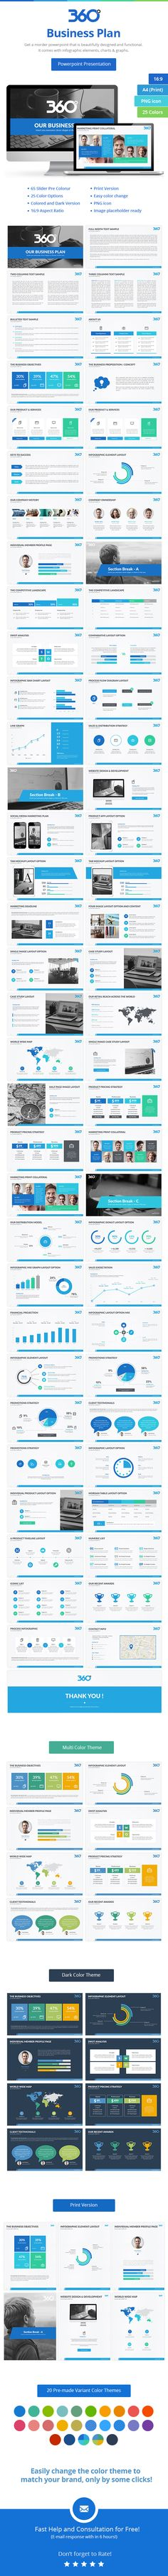 360 Business Plan Powerpoint Template (PowerPoint Templates)